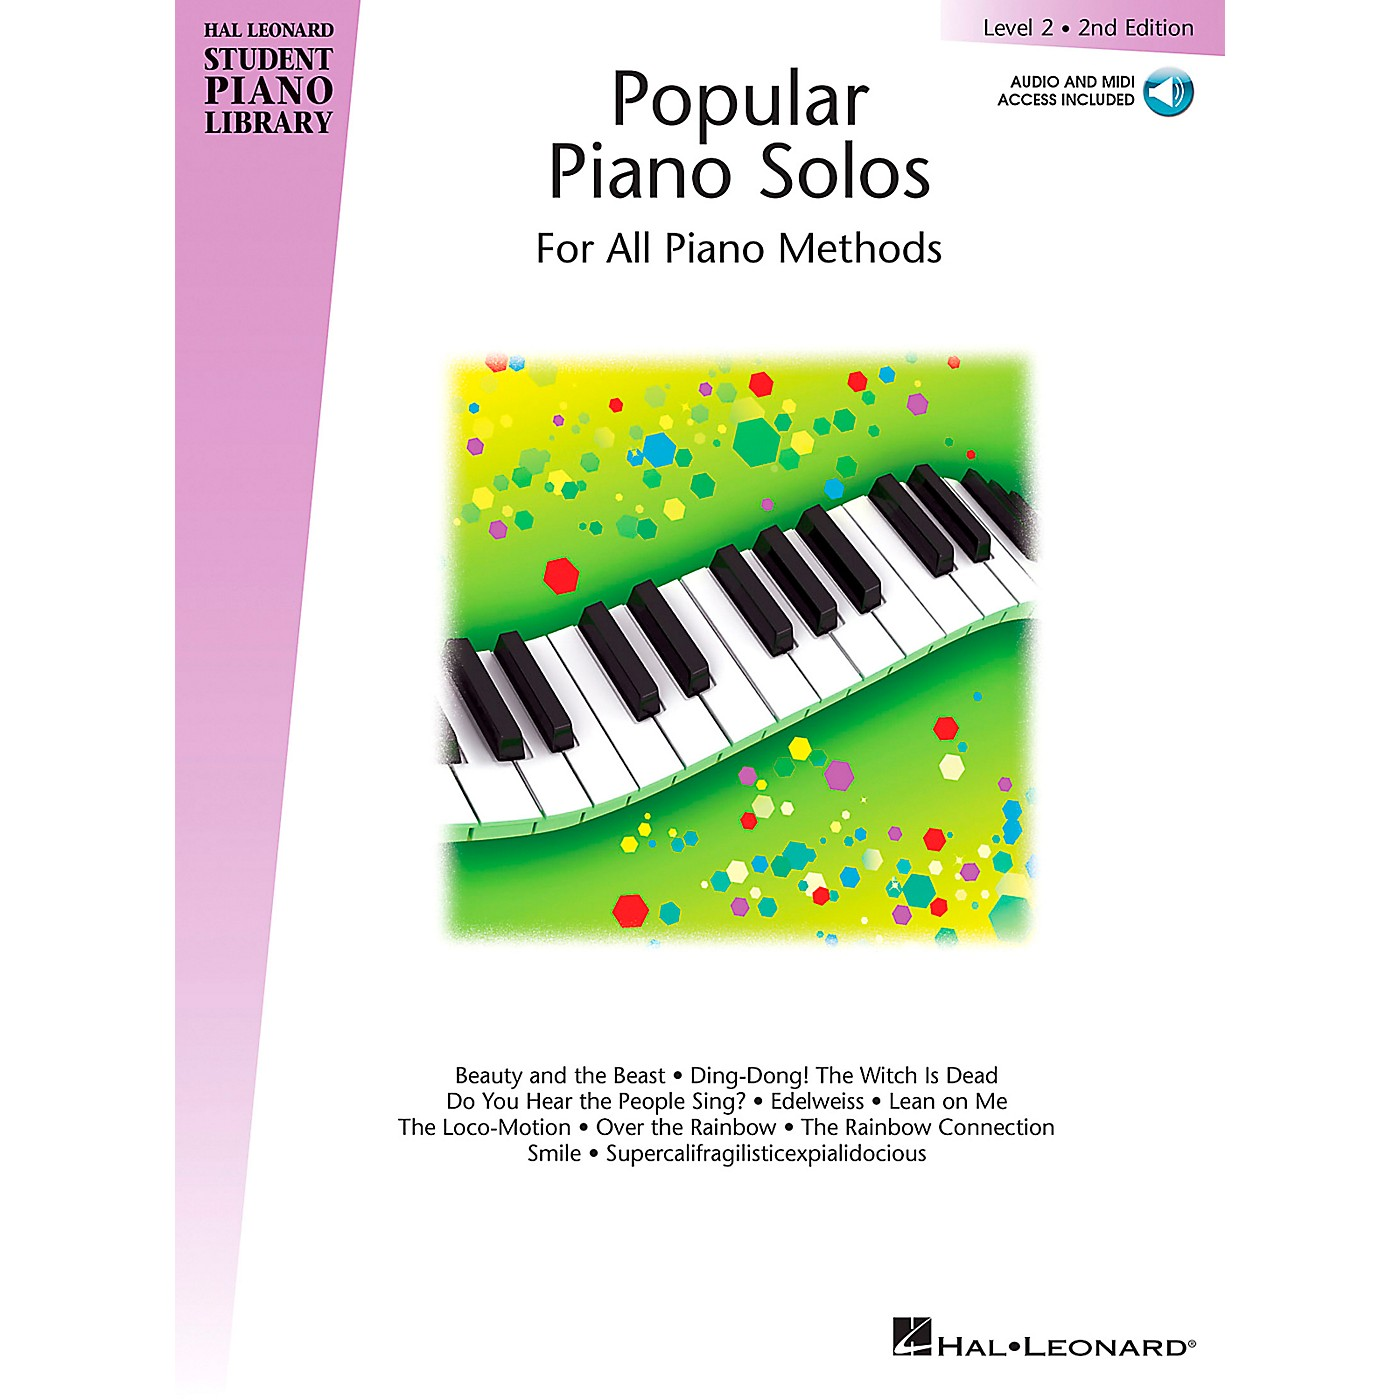 Hal Leonard Popular Piano Solos 2nd Edition - Level 2 Piano Library Series Book with CD by Various (Level Elem) thumbnail